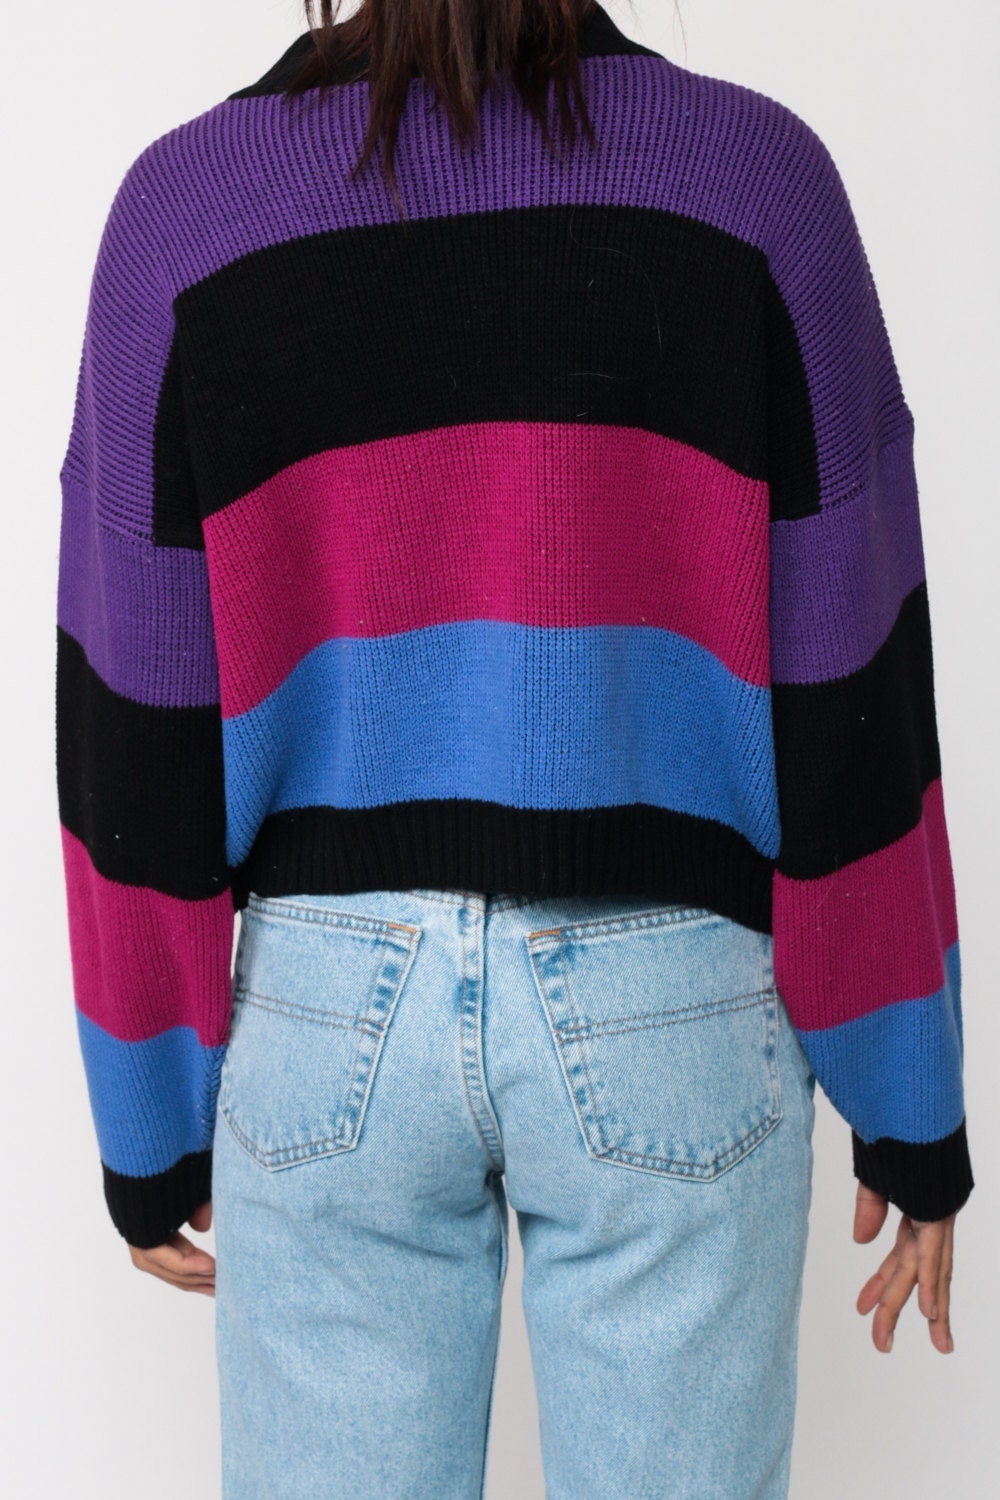 80s Sweater STRIPED Knit Color Block Cropped Blue Purple